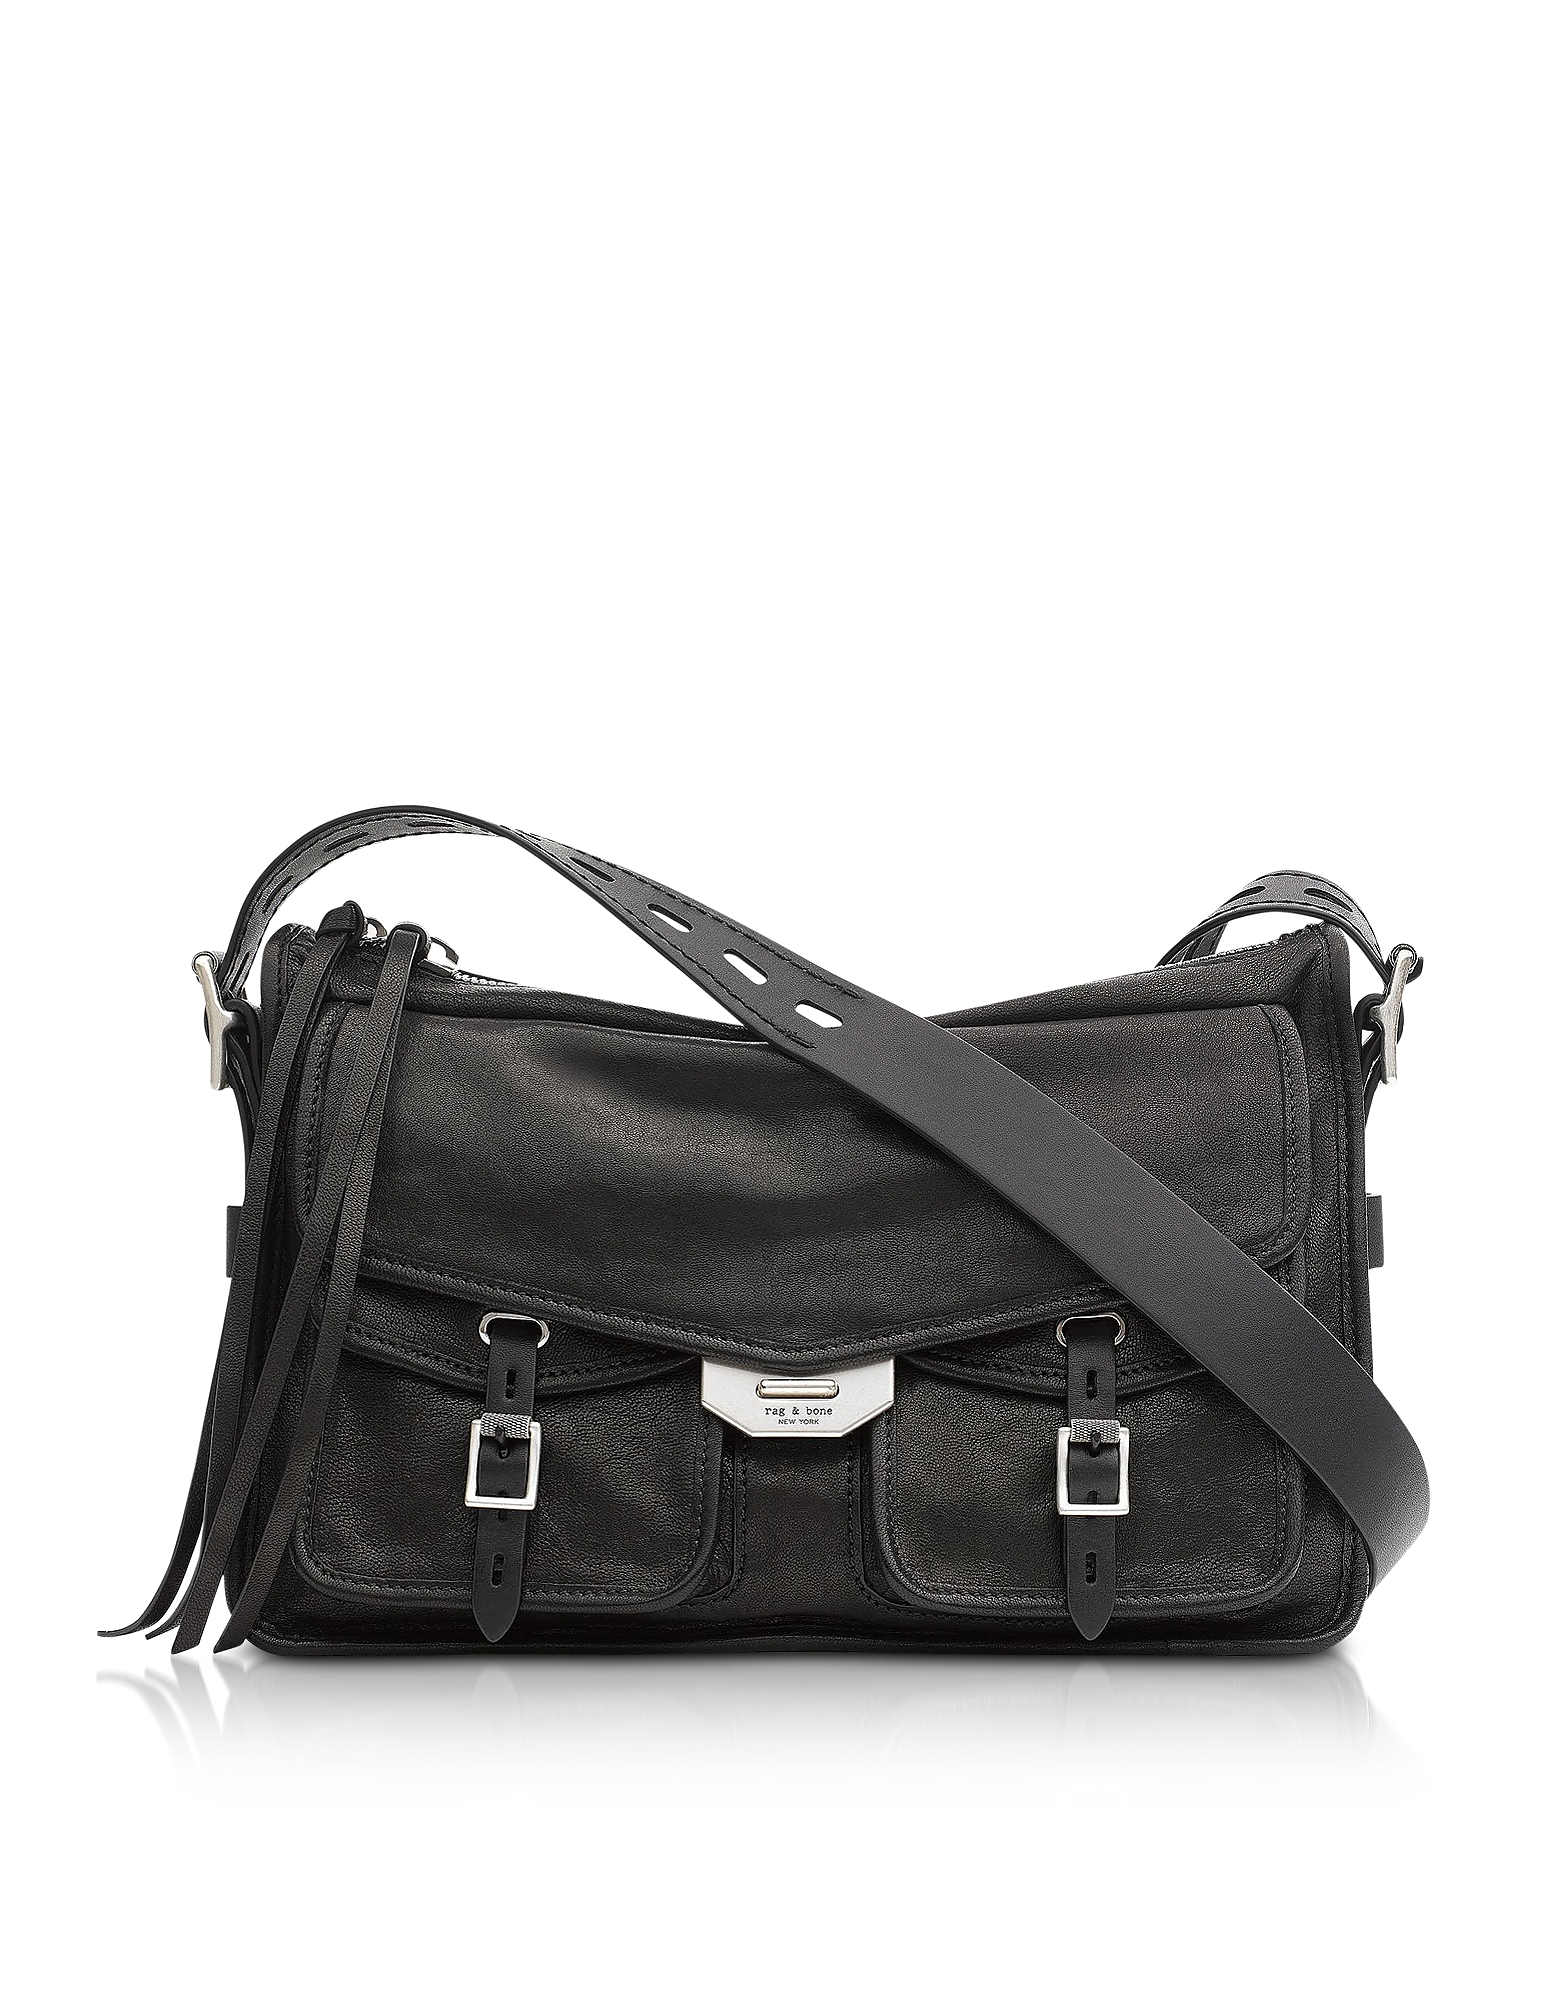 Field Borsa Crossbody in Pelle Nera